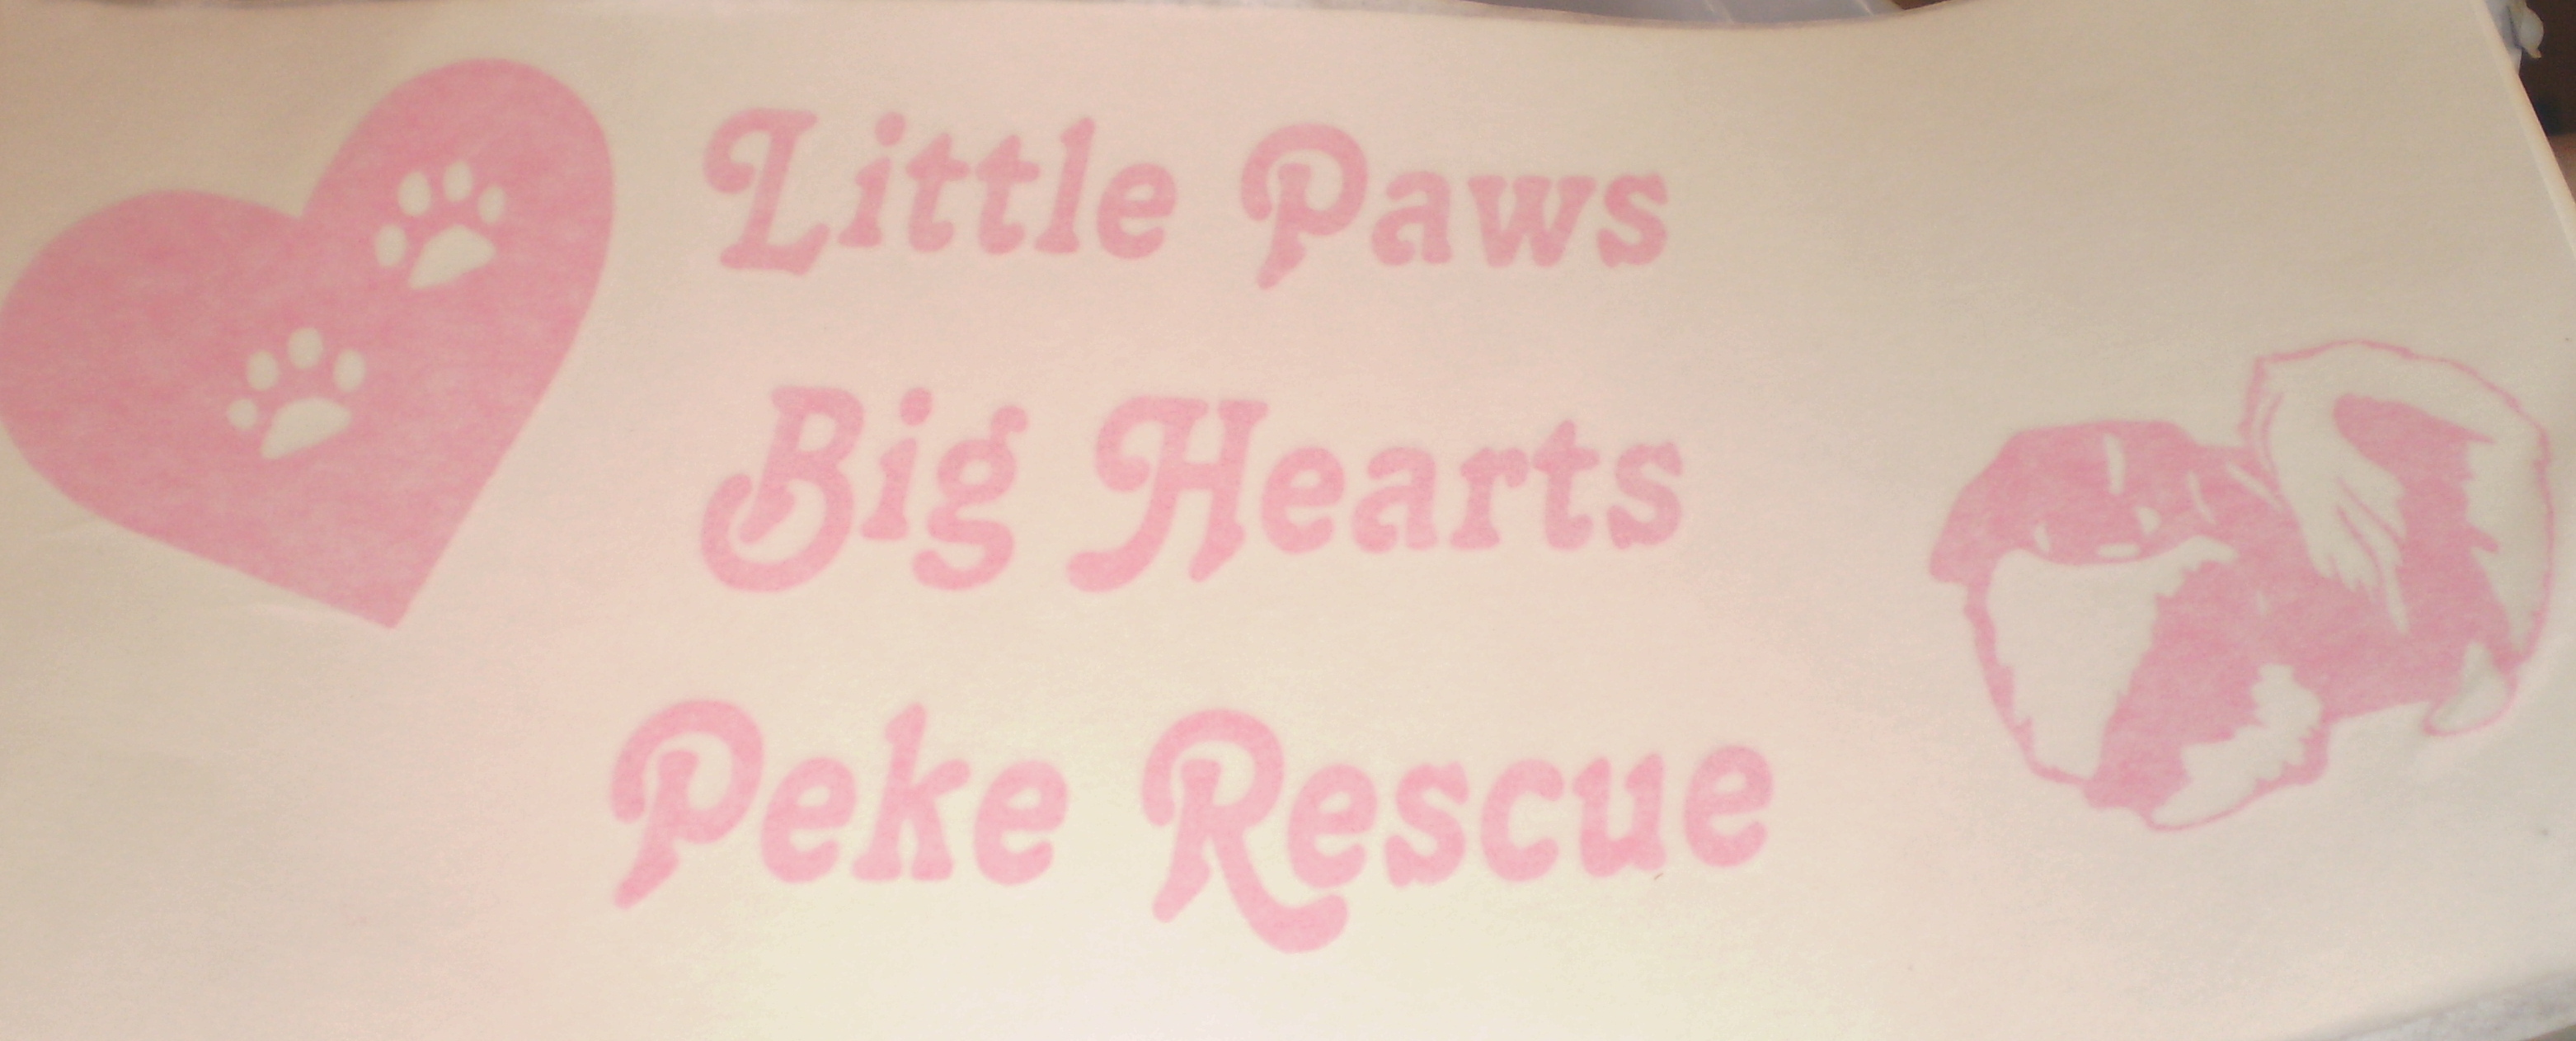 Little Paws Big Hearts Pekingese Rescue